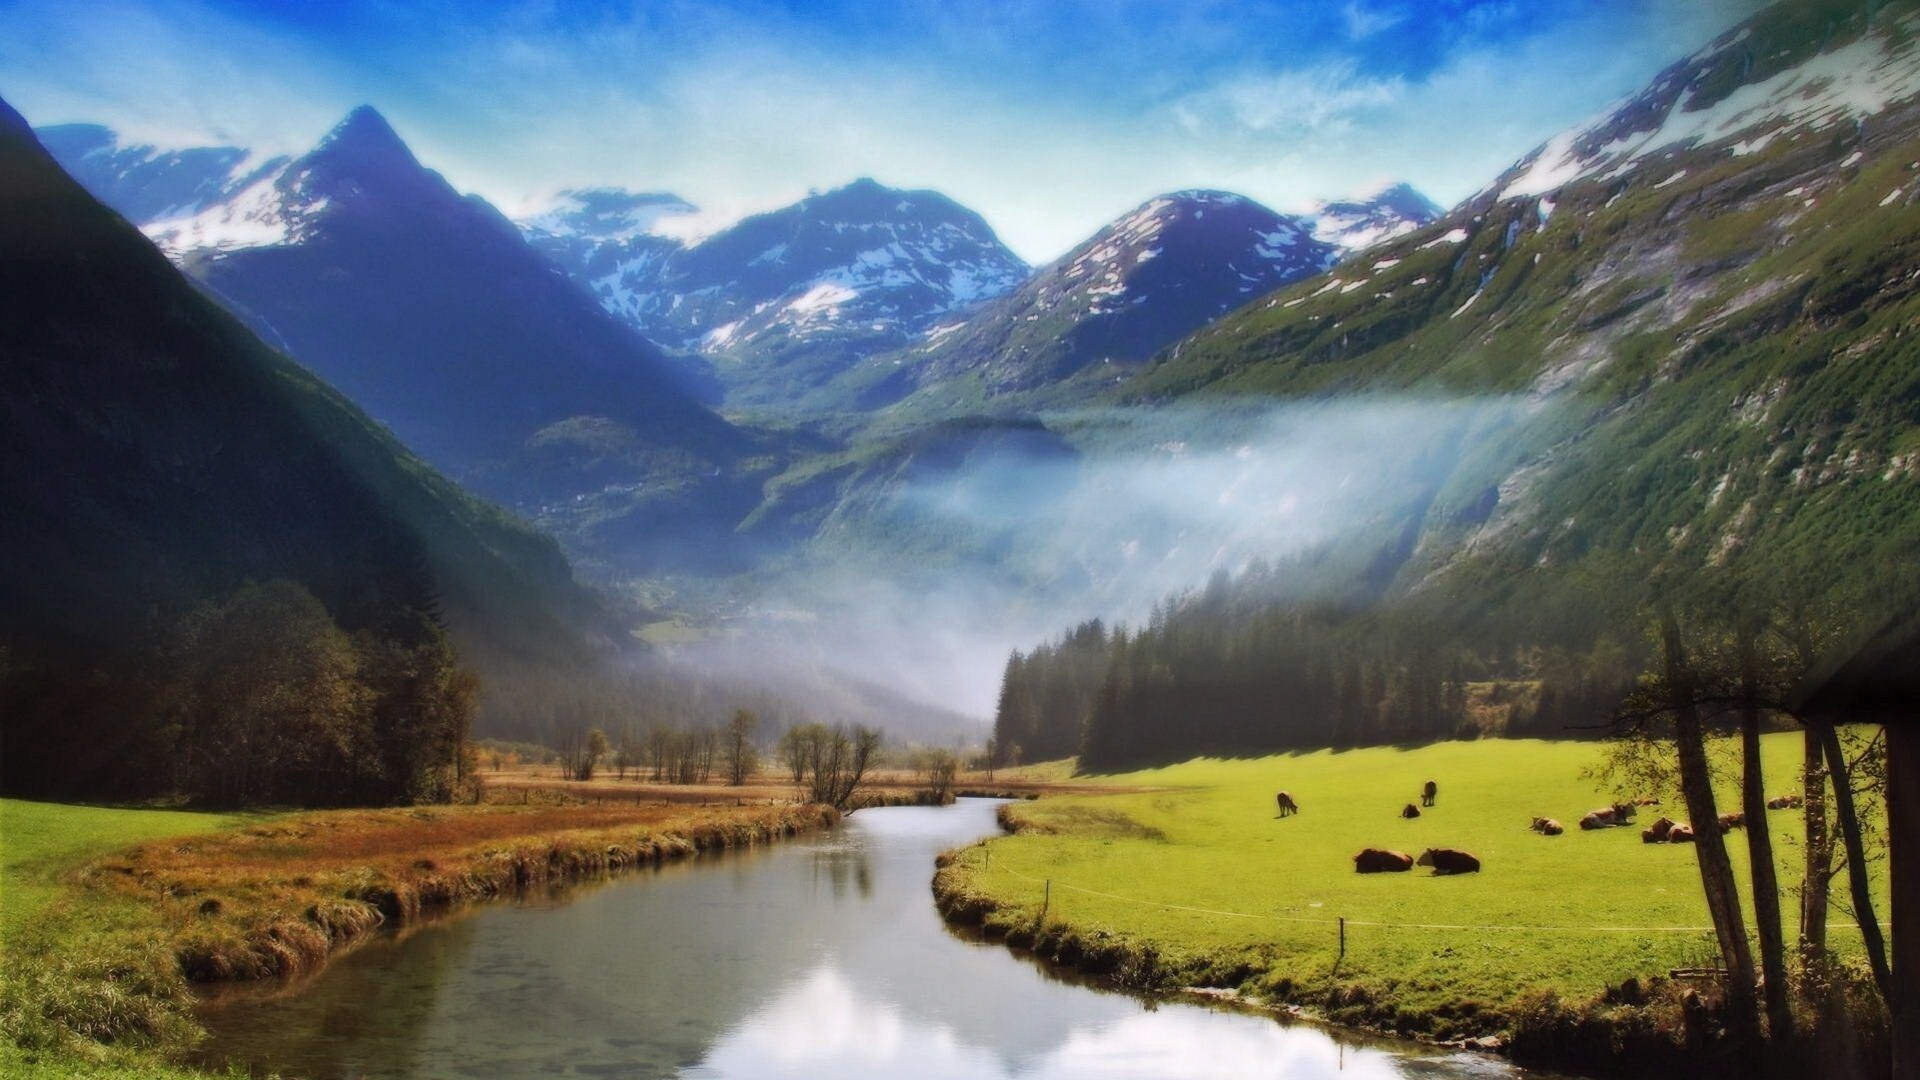 A Big River Flowing Between Mountain Wallpapers | HD Wallpapers